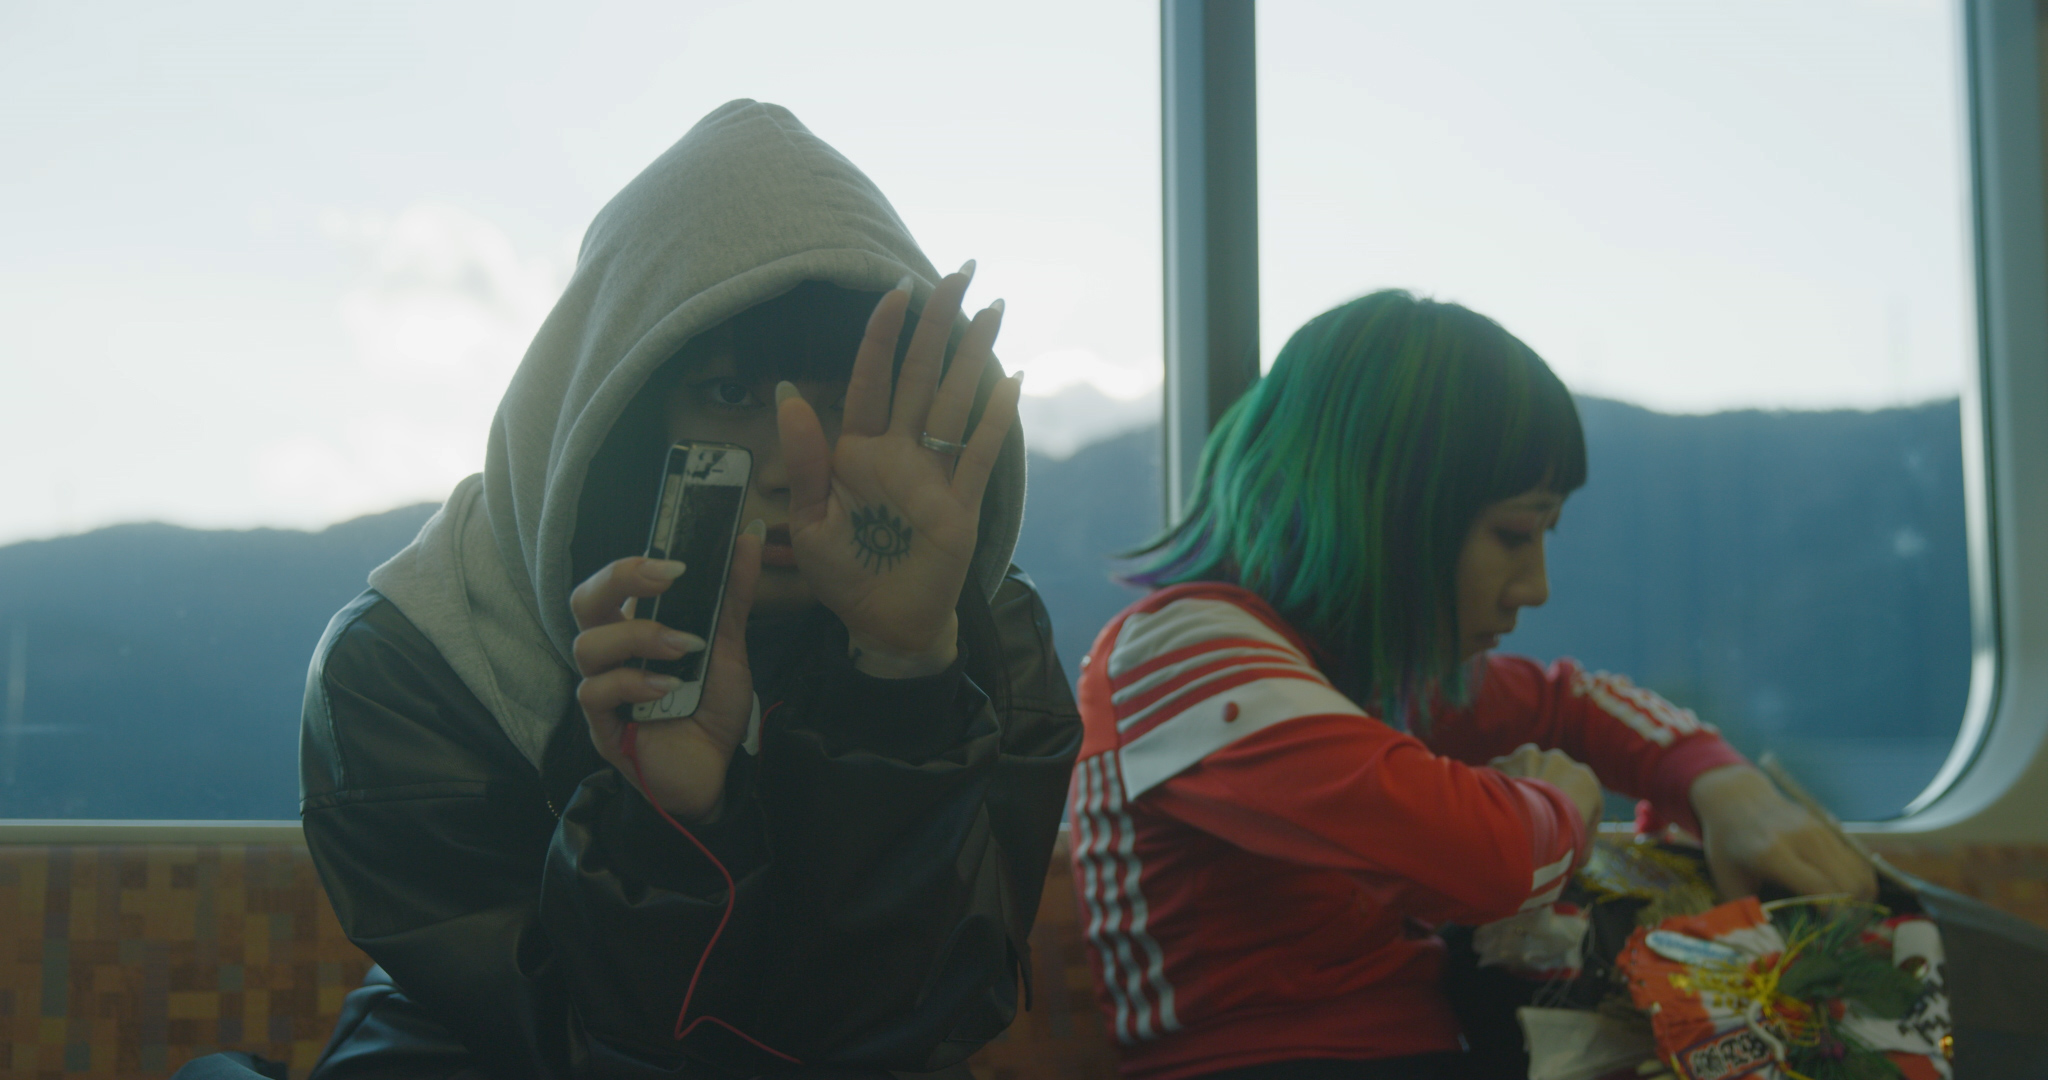 A Japanese girl wearing a hoodie and holding a hand in front of her face while sitting on a train. An eye in ink is visible on her palm, which she holds in front of her right eye. Another girl sits beside her, with a red jacket and blue-green hair, who is working on a costume.